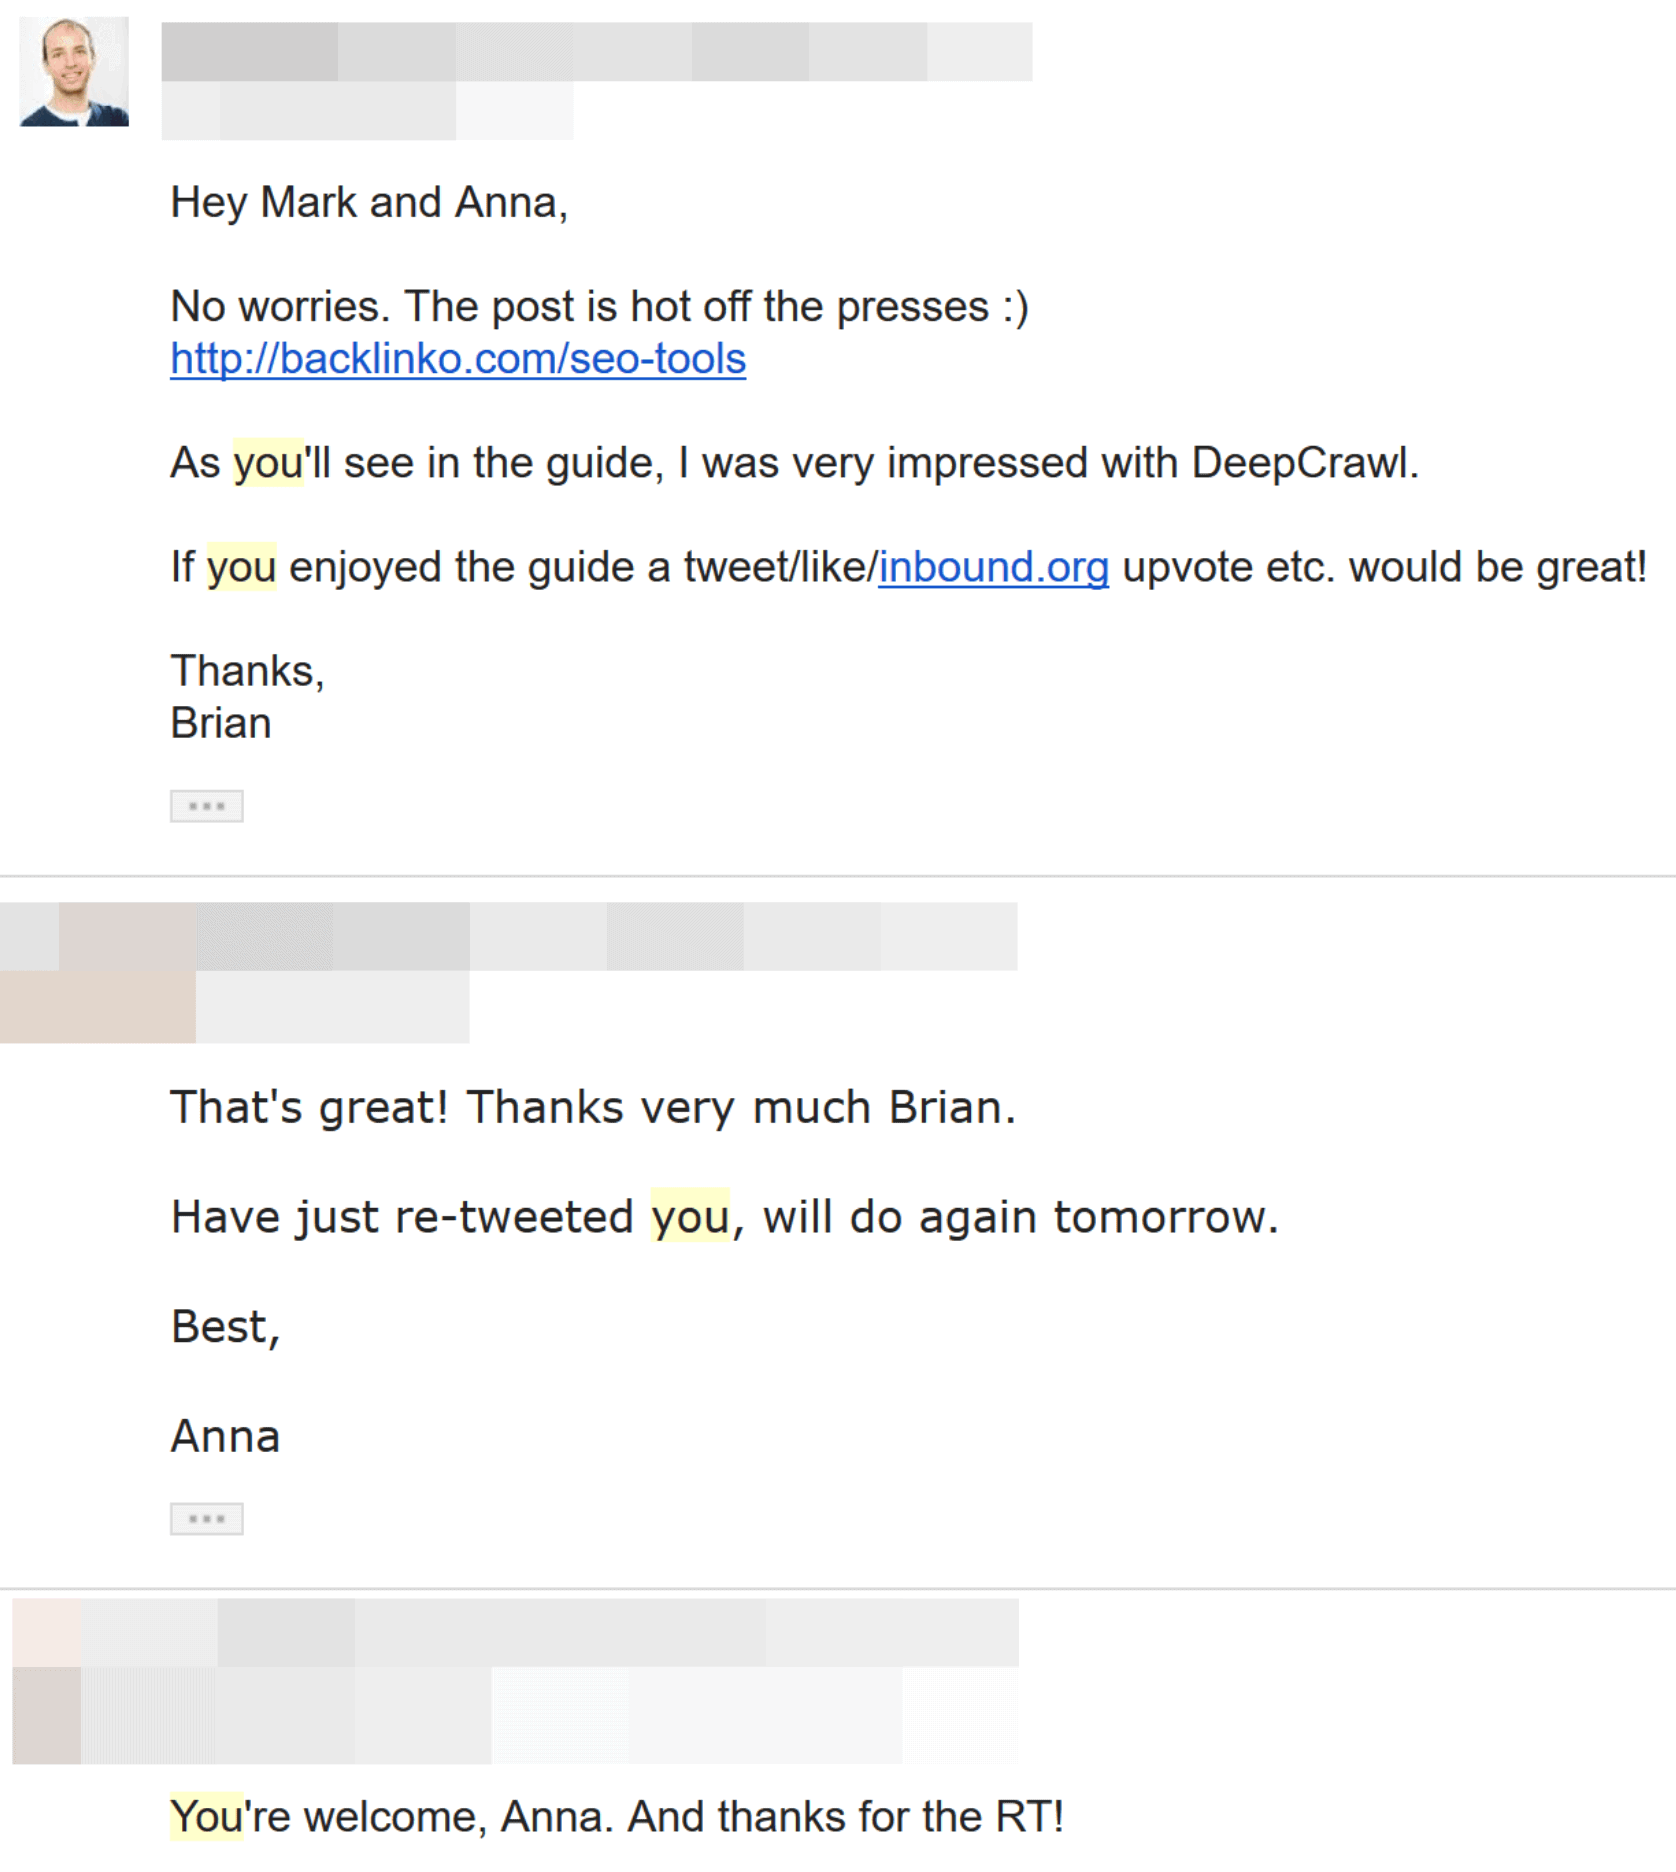 outreach email